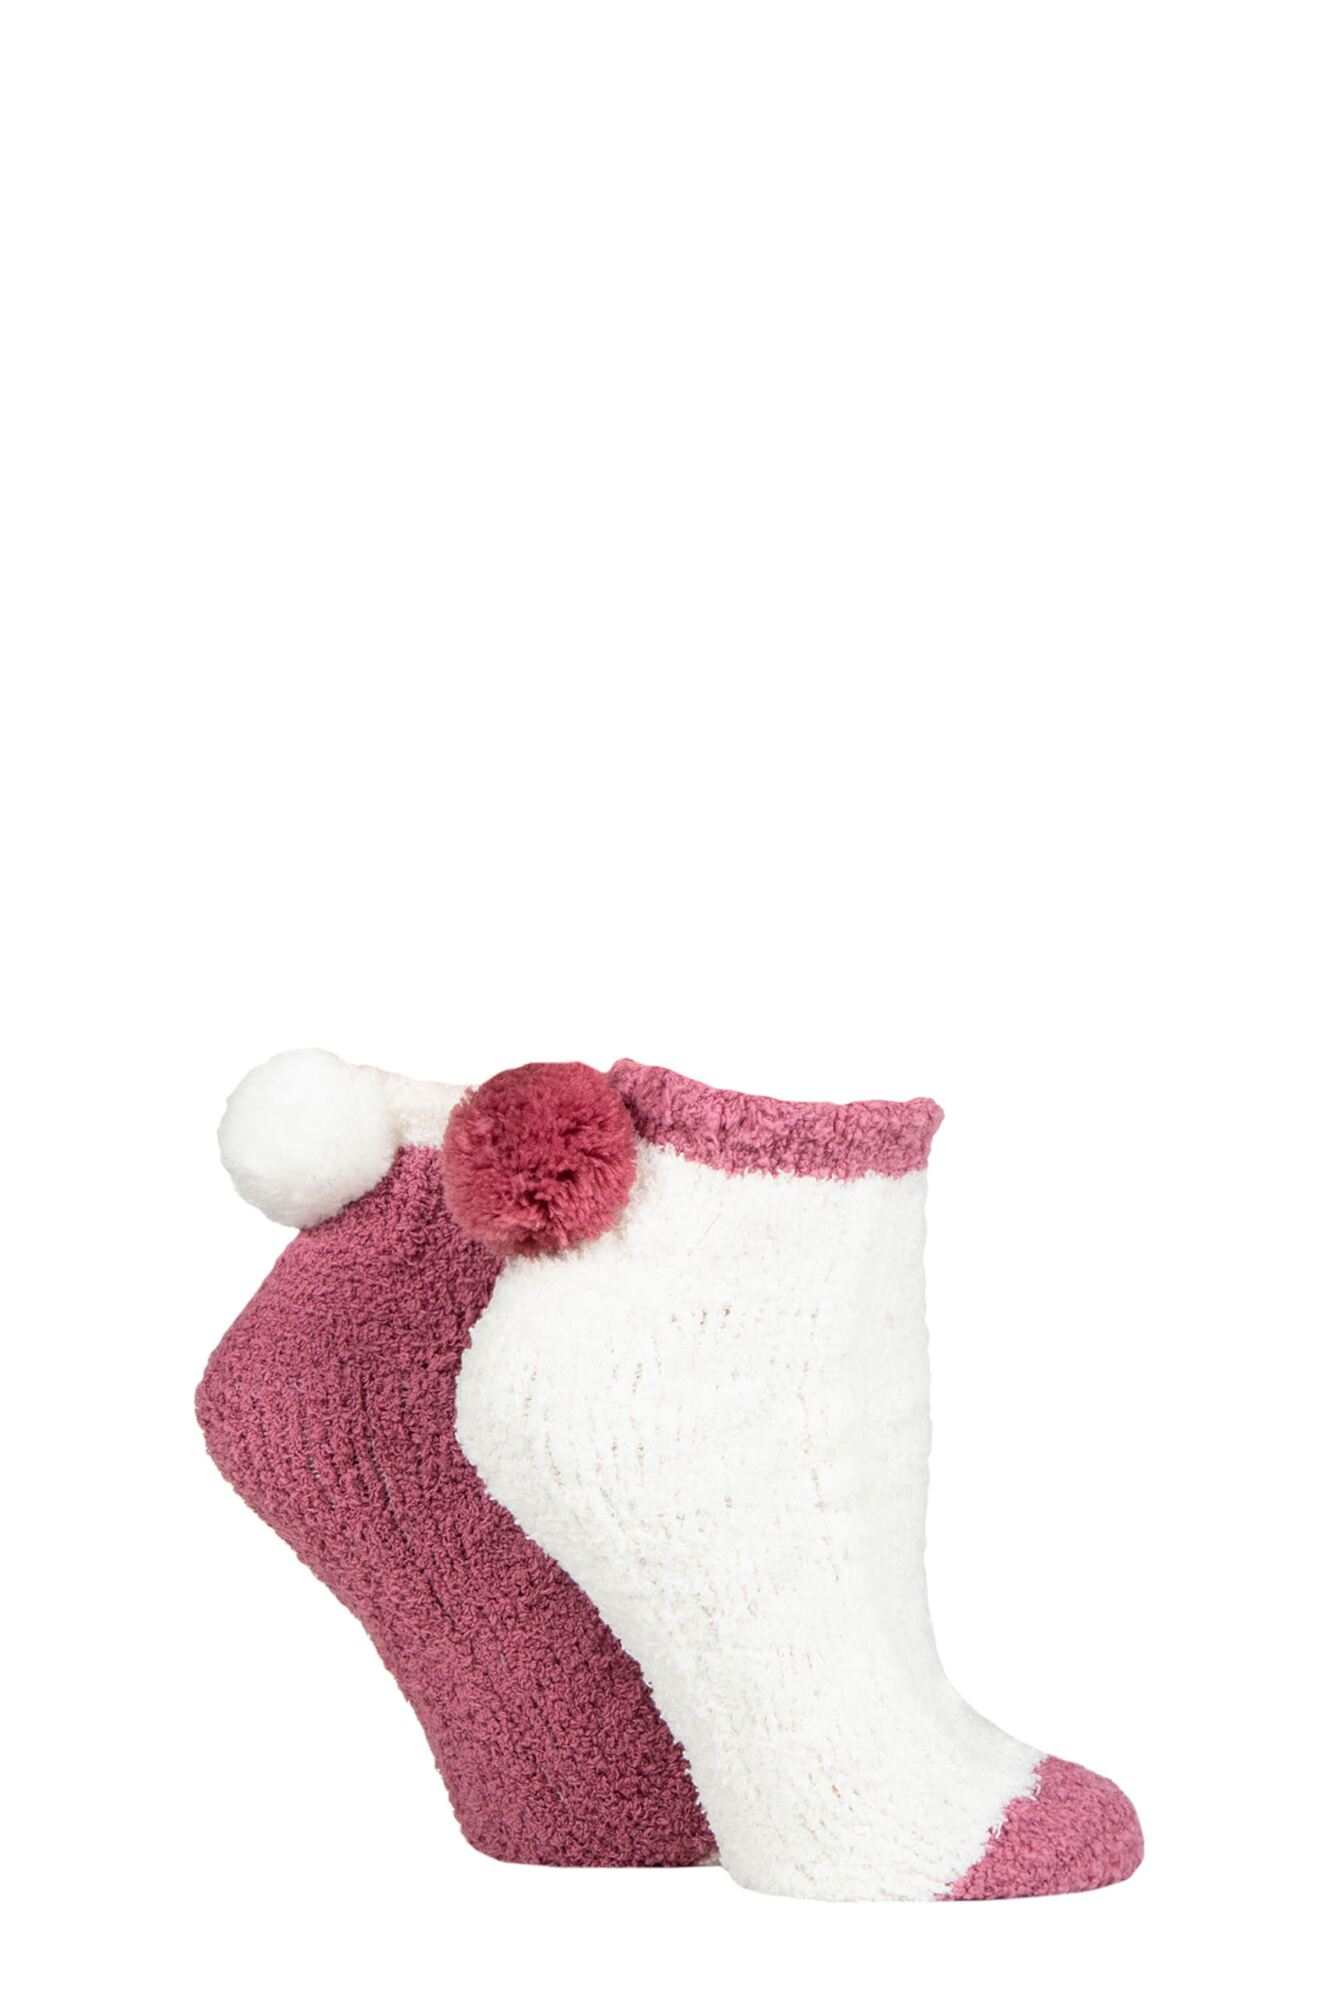 2 Pair Cable Cosy Anklet Socks With Pom Poms Ladies - Elle